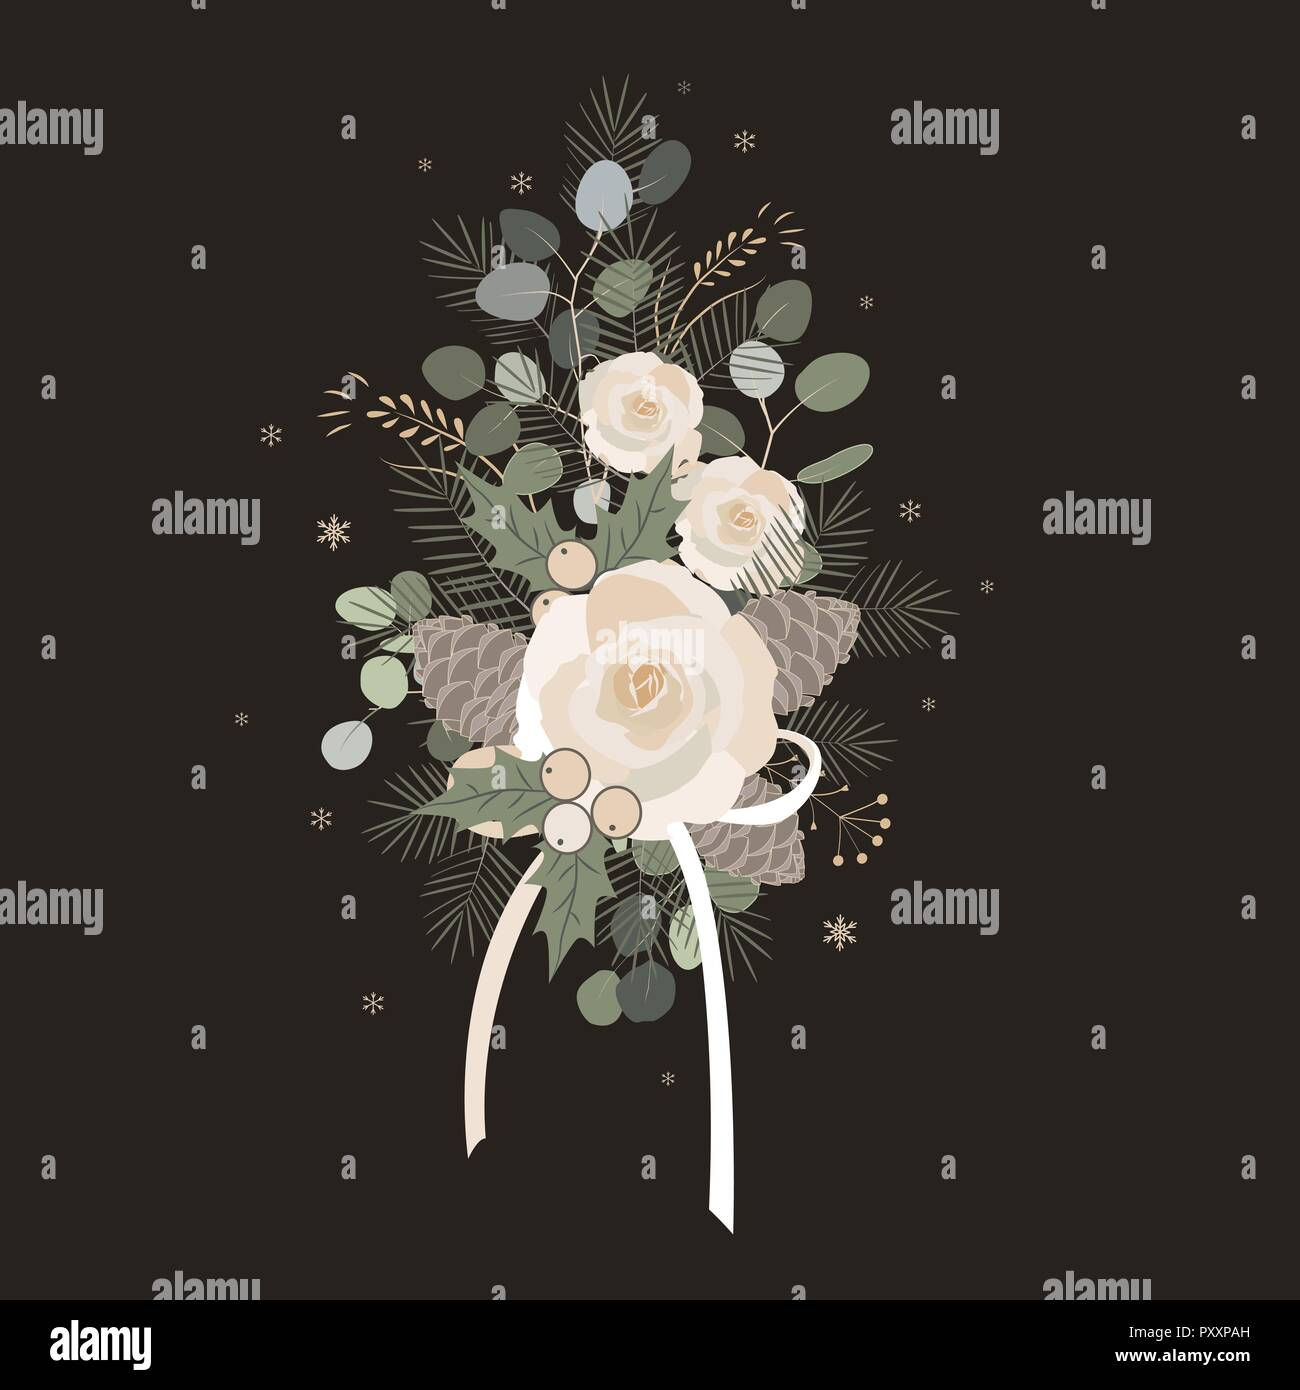 Christmas bouquet arranged with eucalyptus, roses, pine cones, mix of plants and berries. Christmas design - Stock Vector